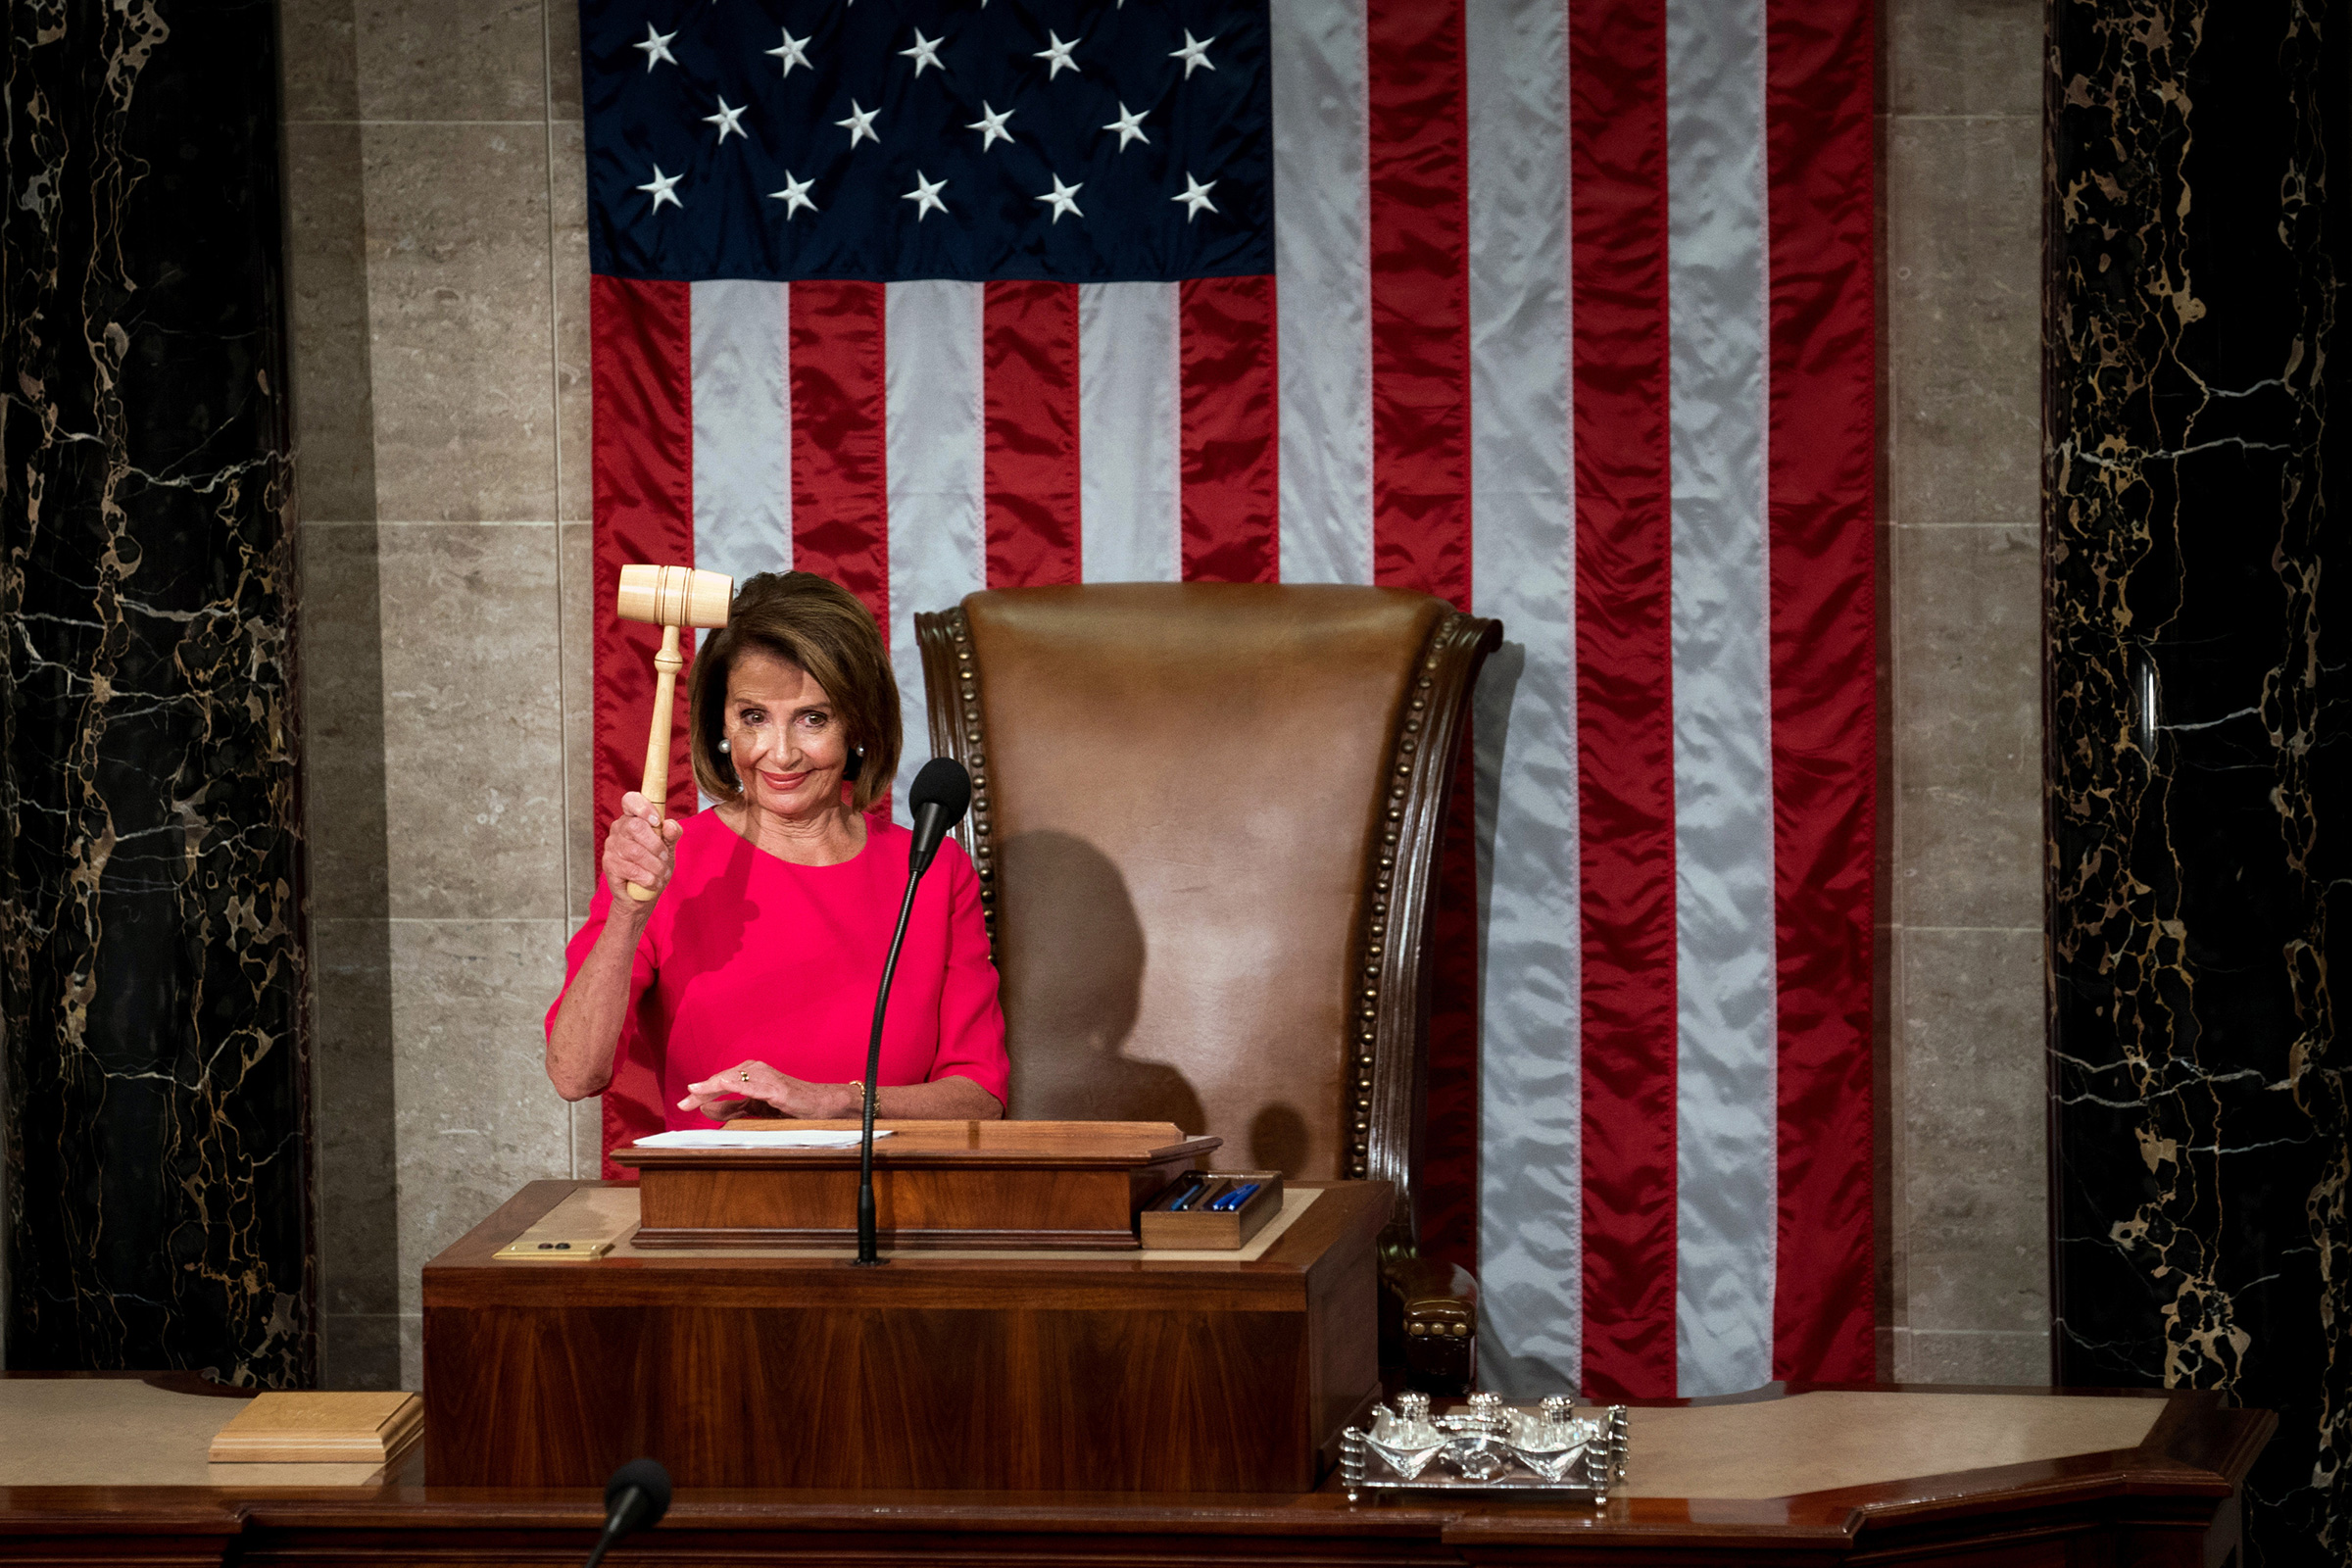 Rep. Nancy Pelosi wields the gavel after her election as Speaker of the House at the Capitol in Washington, D.C. on Jan. 3, 2019.